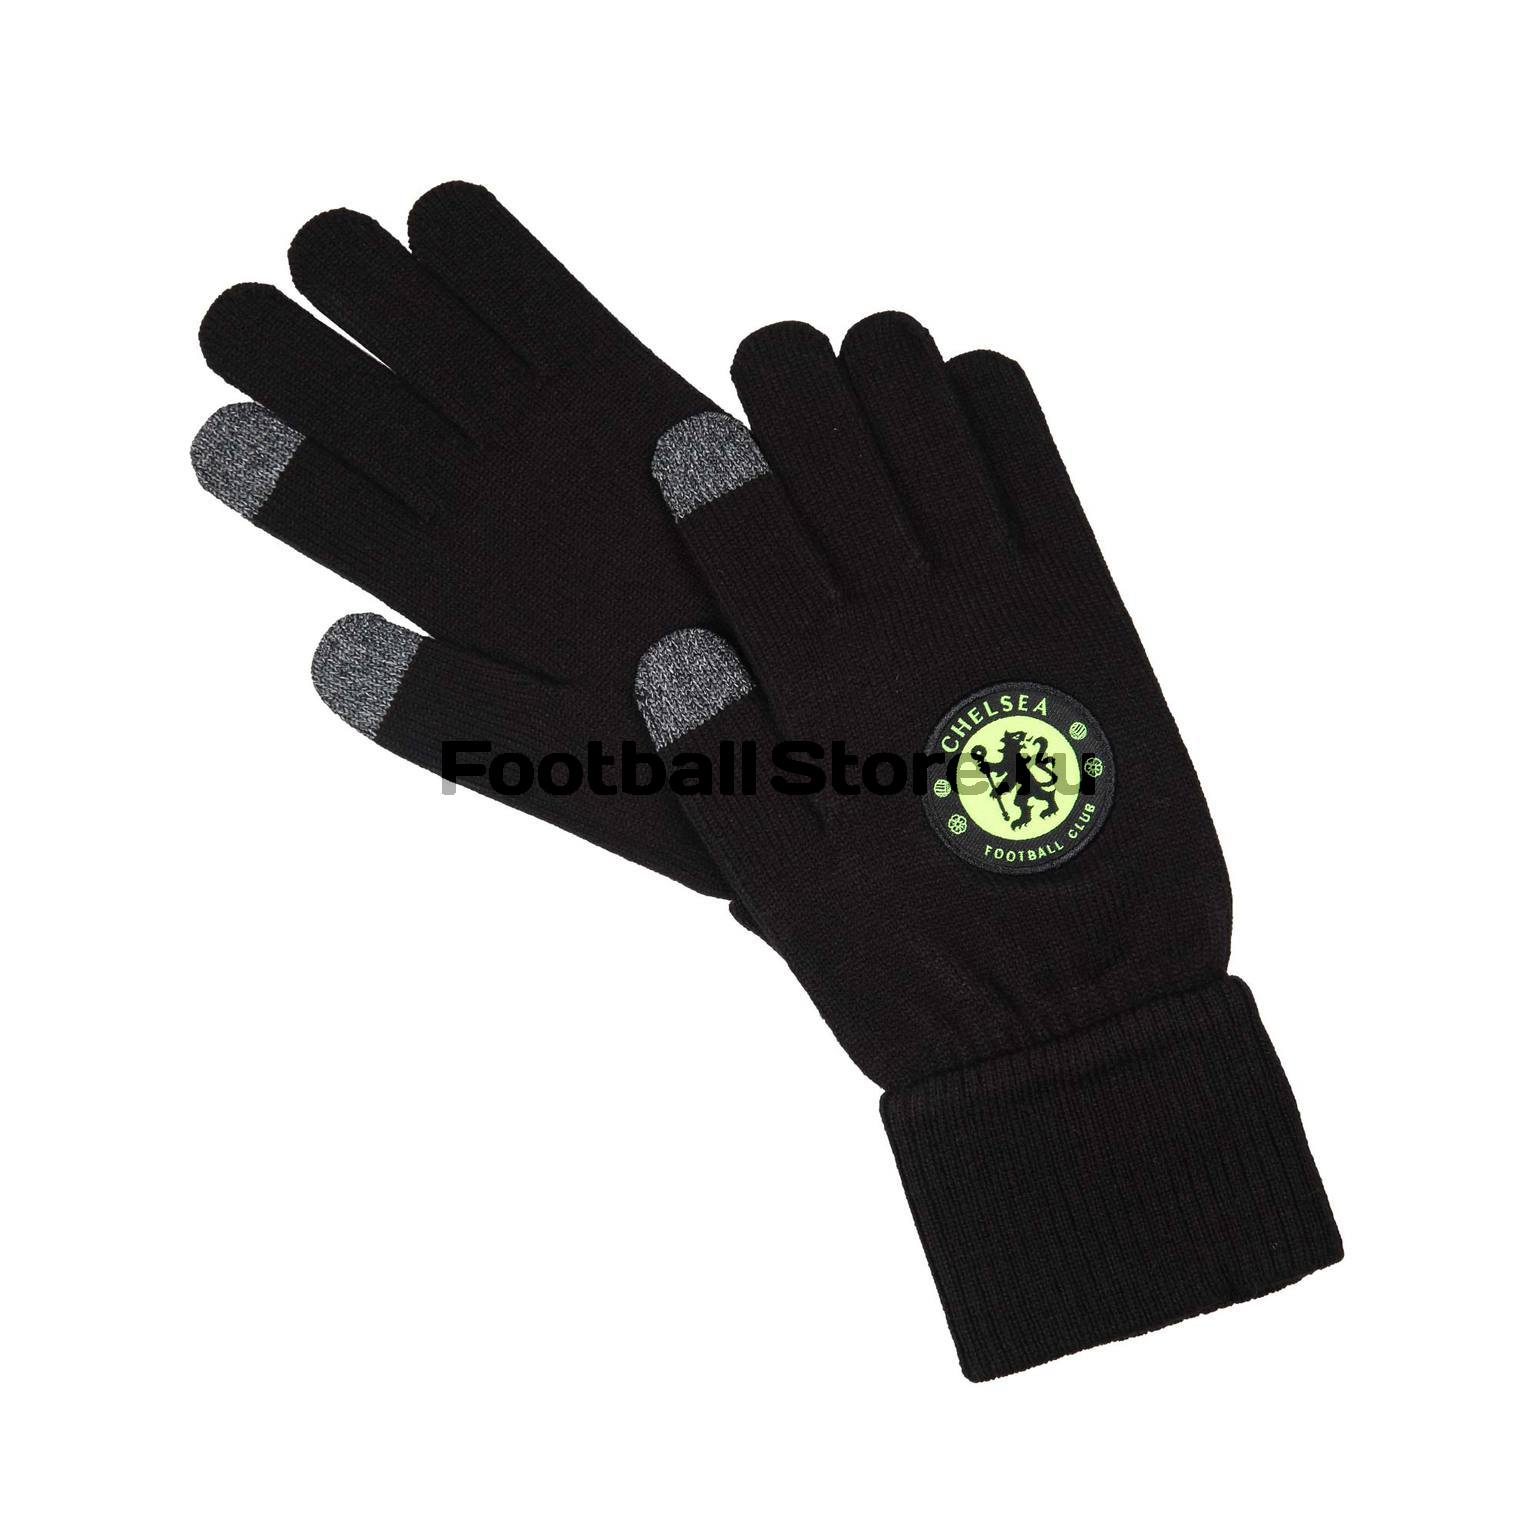 Перчатки тренировочные Adidas Chelsea Gloves AX6624 3m work gloves comfort grip wear resistant slip resistant gloves anti labor safety gloves nitrile rubber gloves size l m